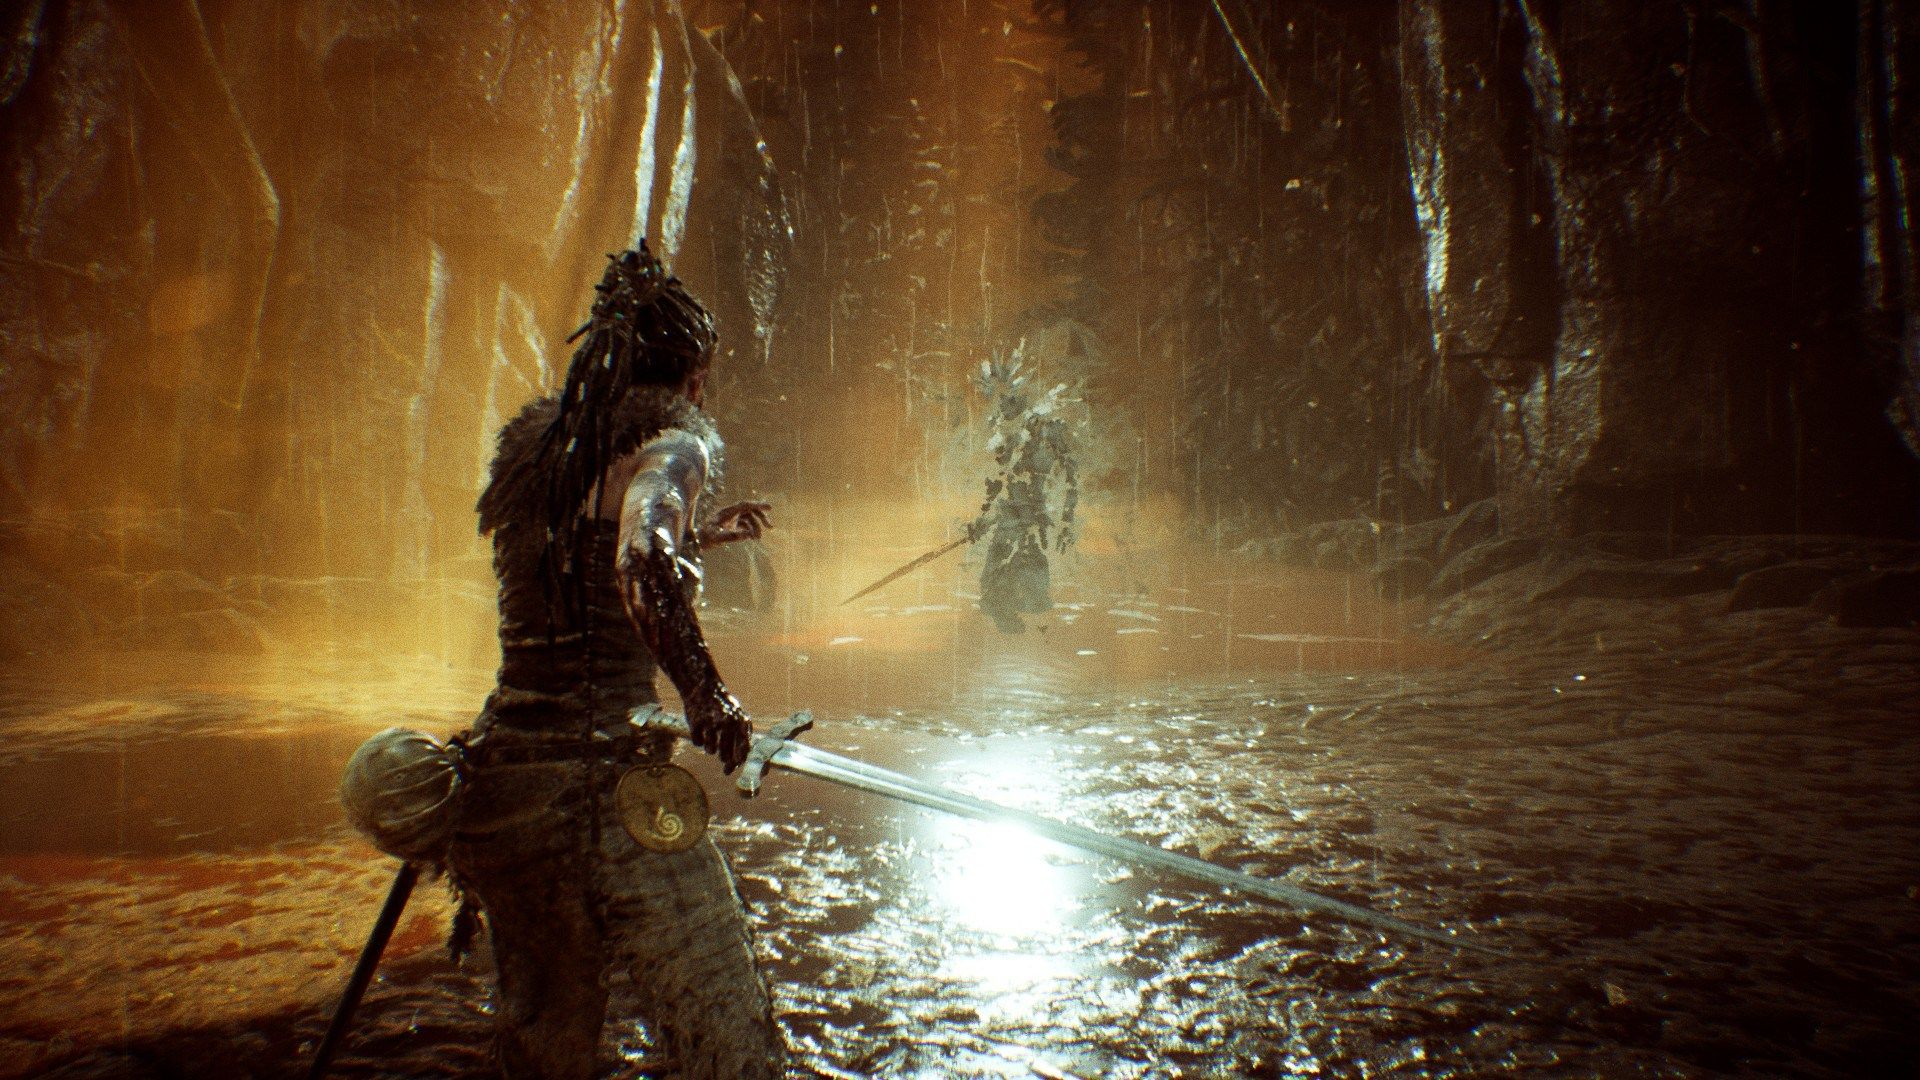 Hellblade wallpapers top free hellblade backgrounds wallpaperaccess - Sacrifice wallpaper ...